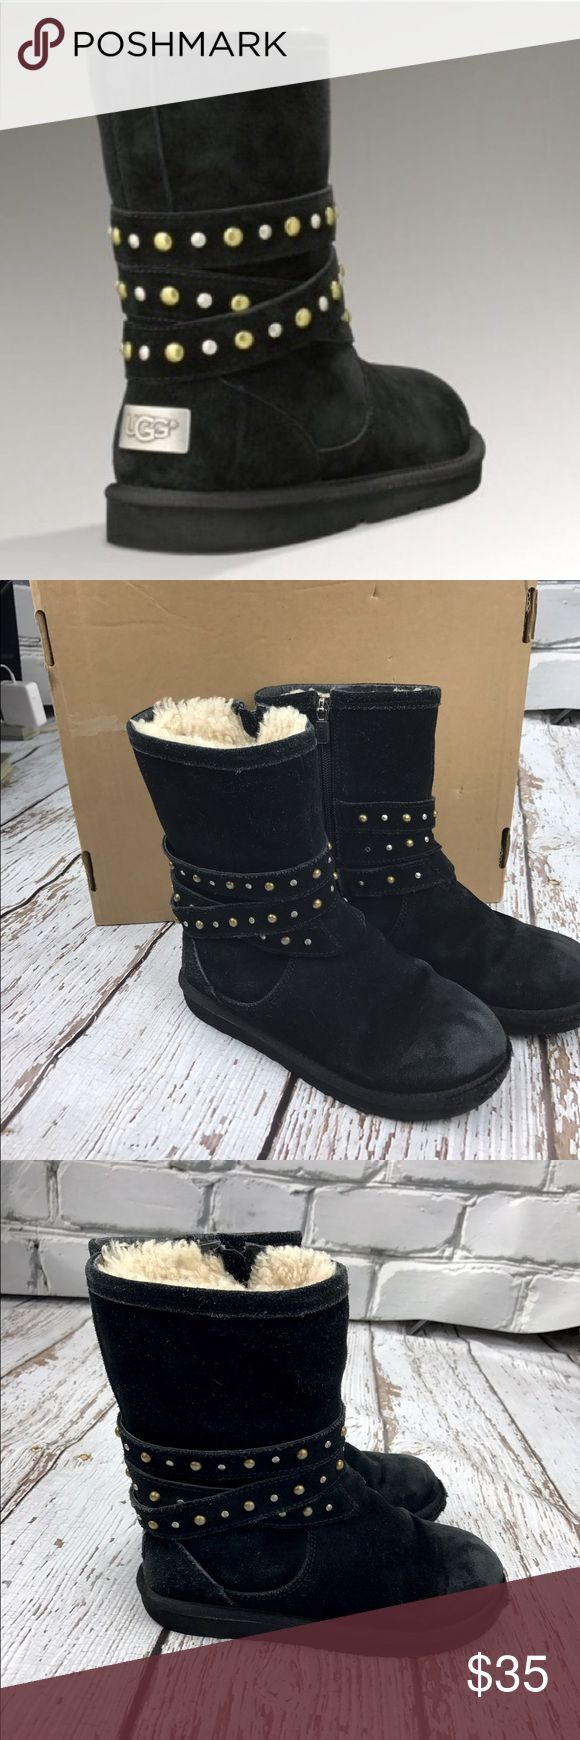 💕SALE💕 Ugg Back Studded Boots Cozy 💕 Ugg Back Studded Boots some fading on toes but otherwise Great Condition UGG Shoes Boots